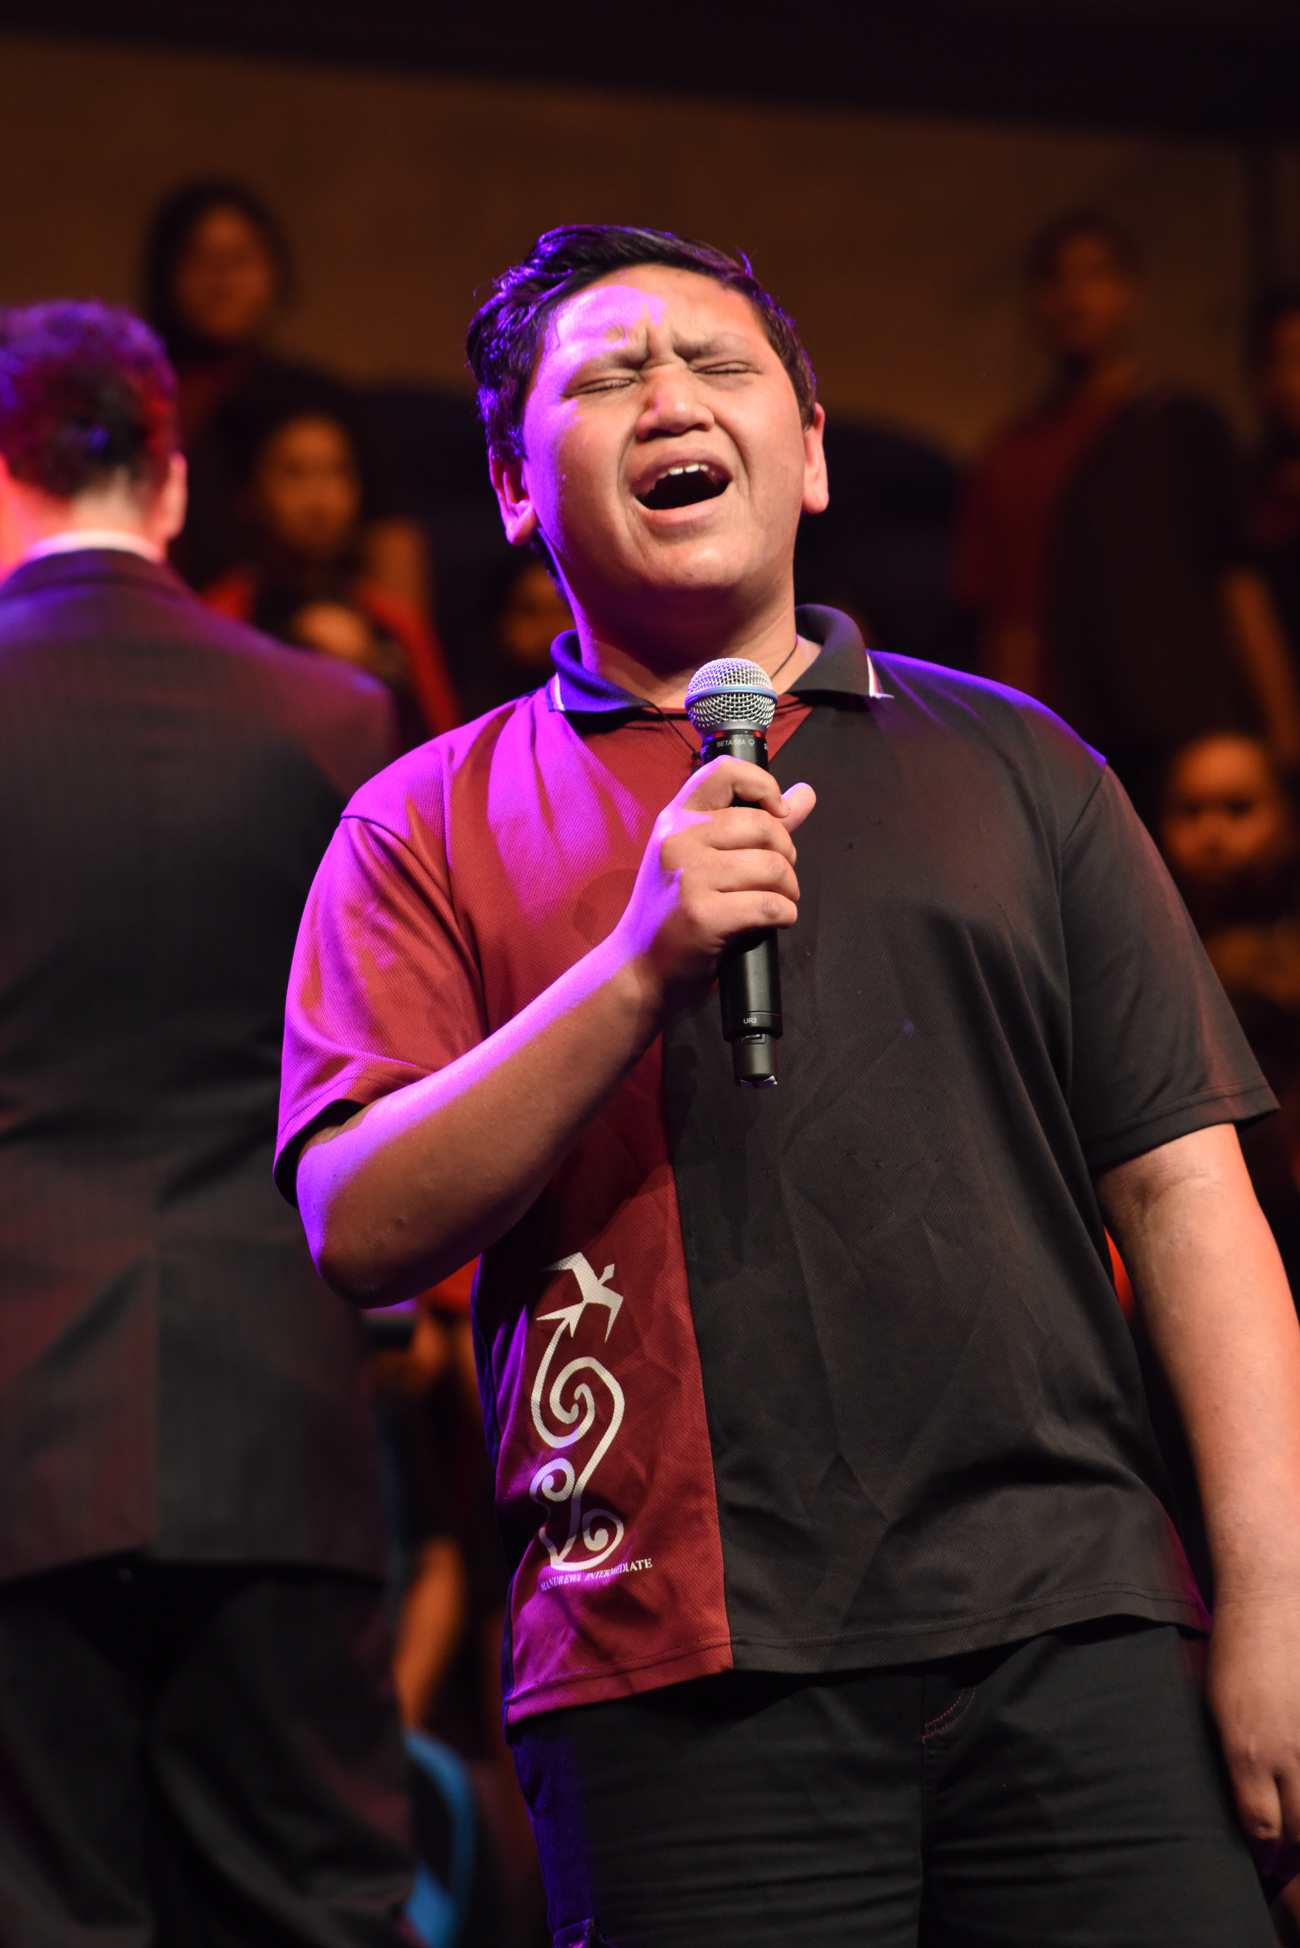 A boy singing intensely at the Vodafone Event Centre in the stage